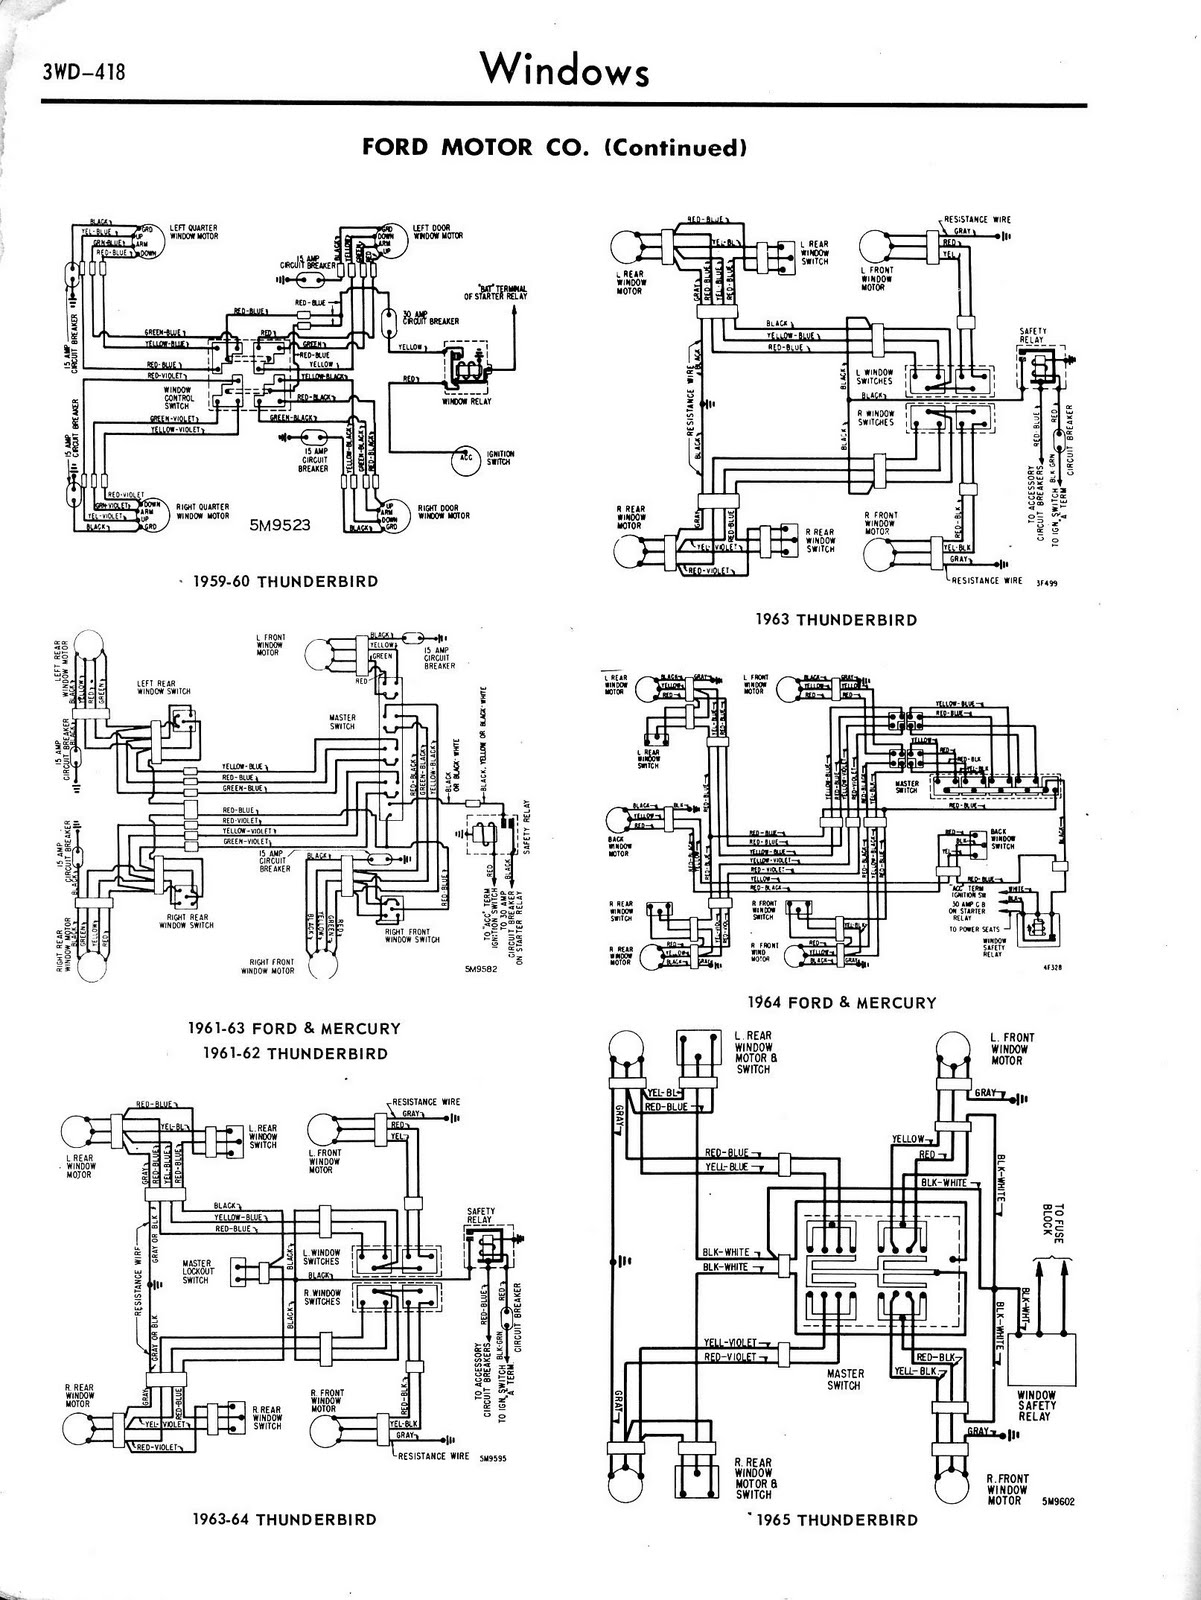 1965 Ford Thunderbird Alternator Wiring Diagram Trusted 1970 Mustang Dodge Truck Diagrams Rh Glaszt Tripa Co 1988